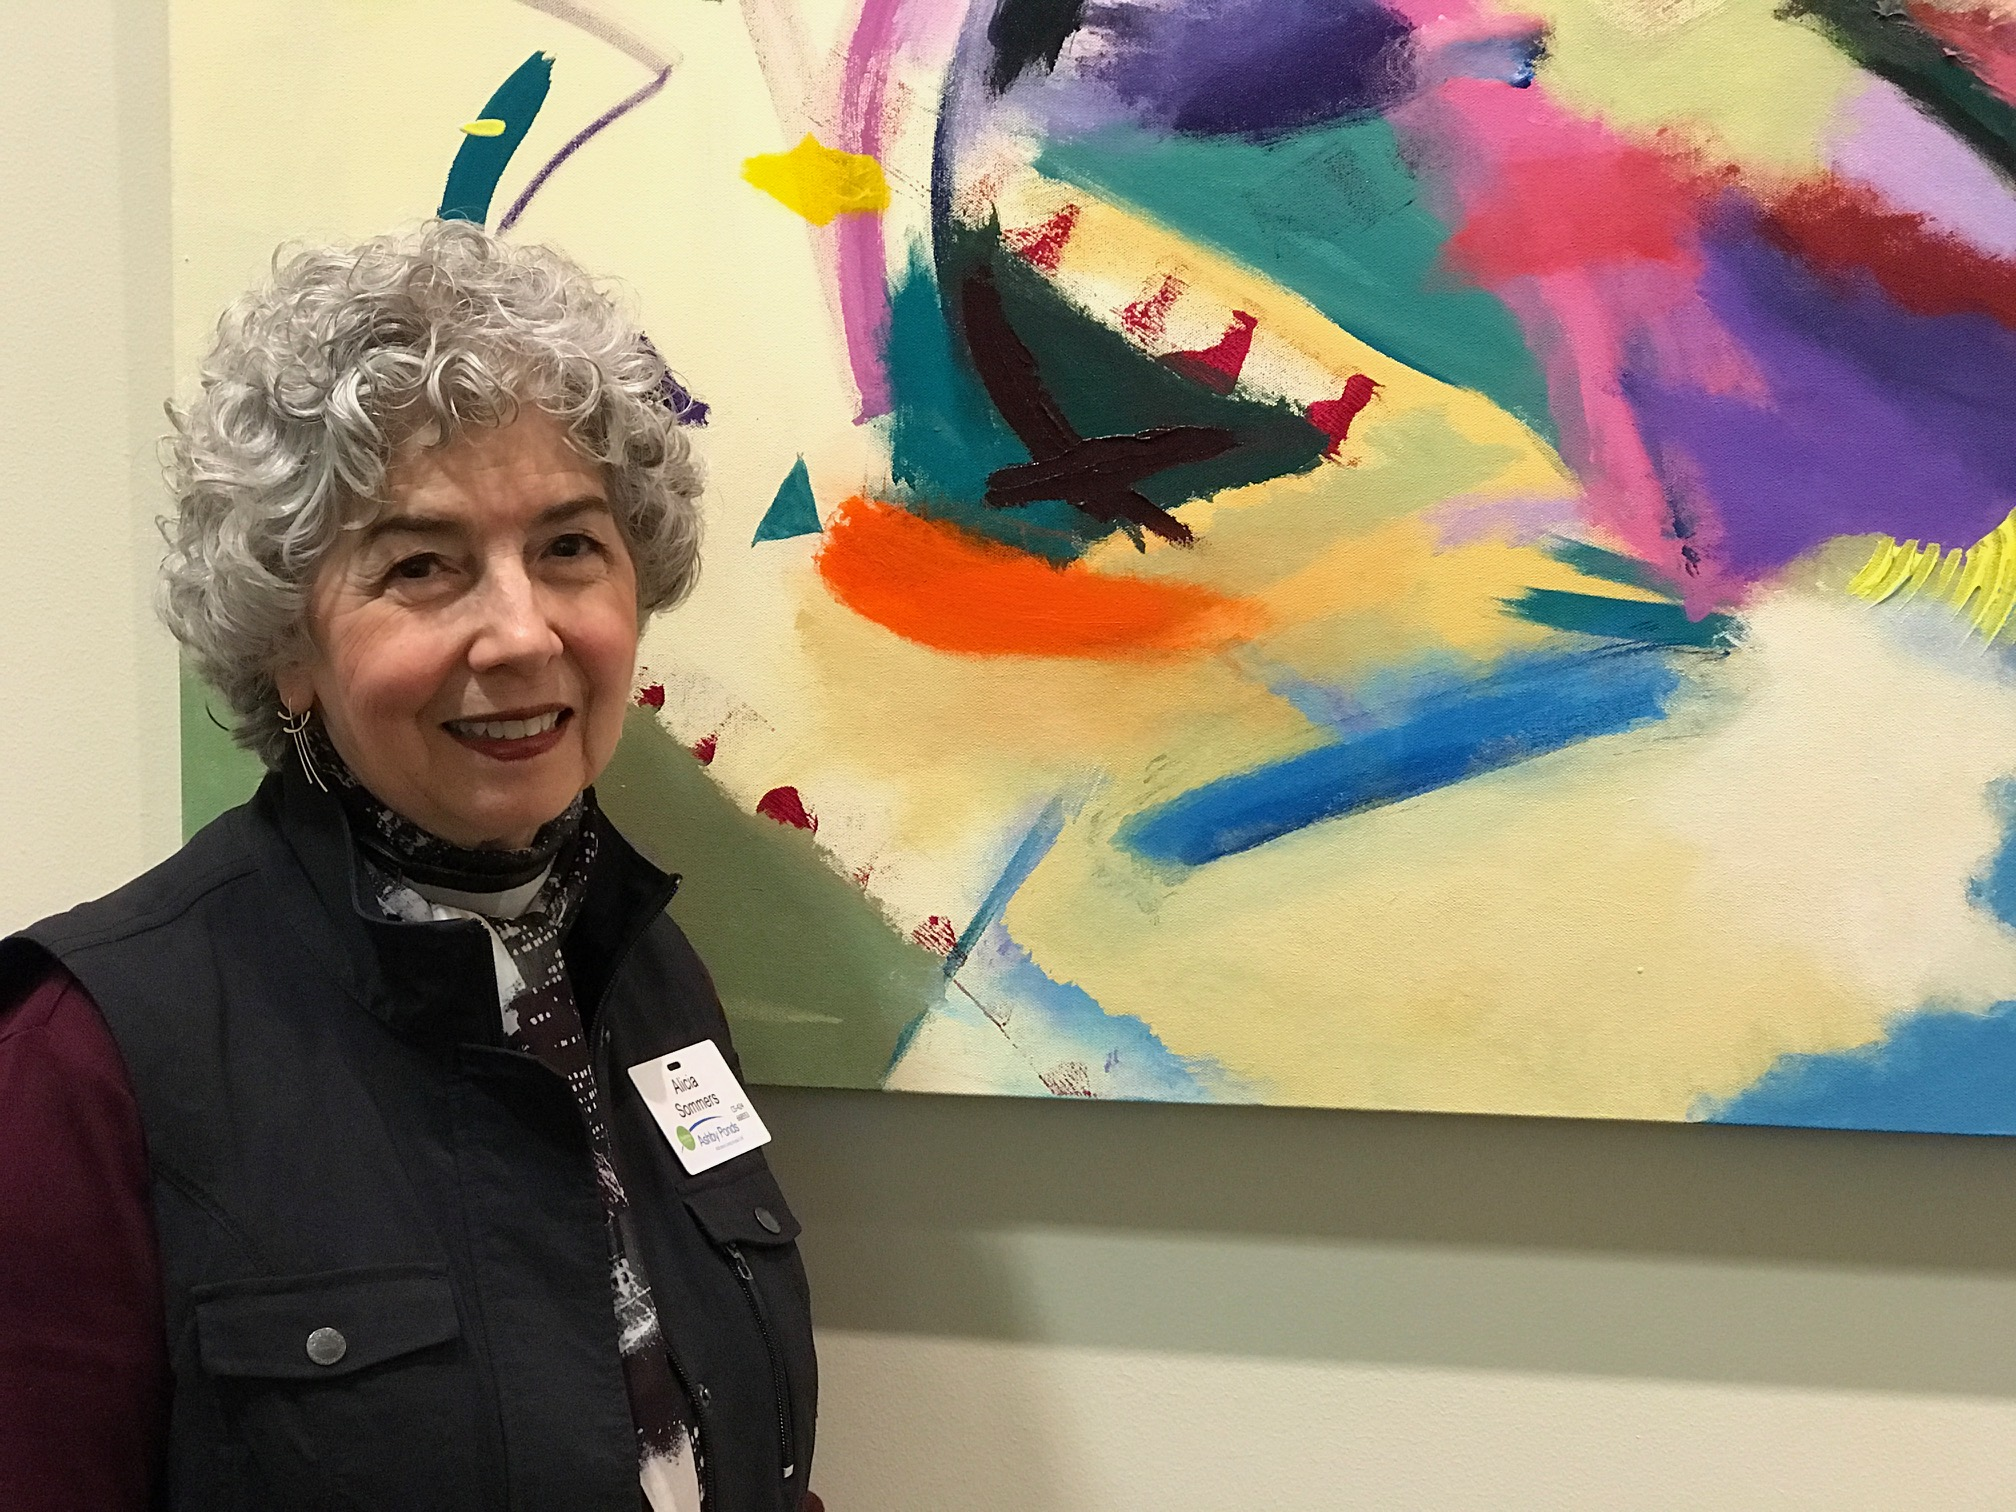 Mrs. Alicia Sommers is photographed with one of her colorful abstract paintings displayed at the Art Gallery of the Great Oak Clubhouse.